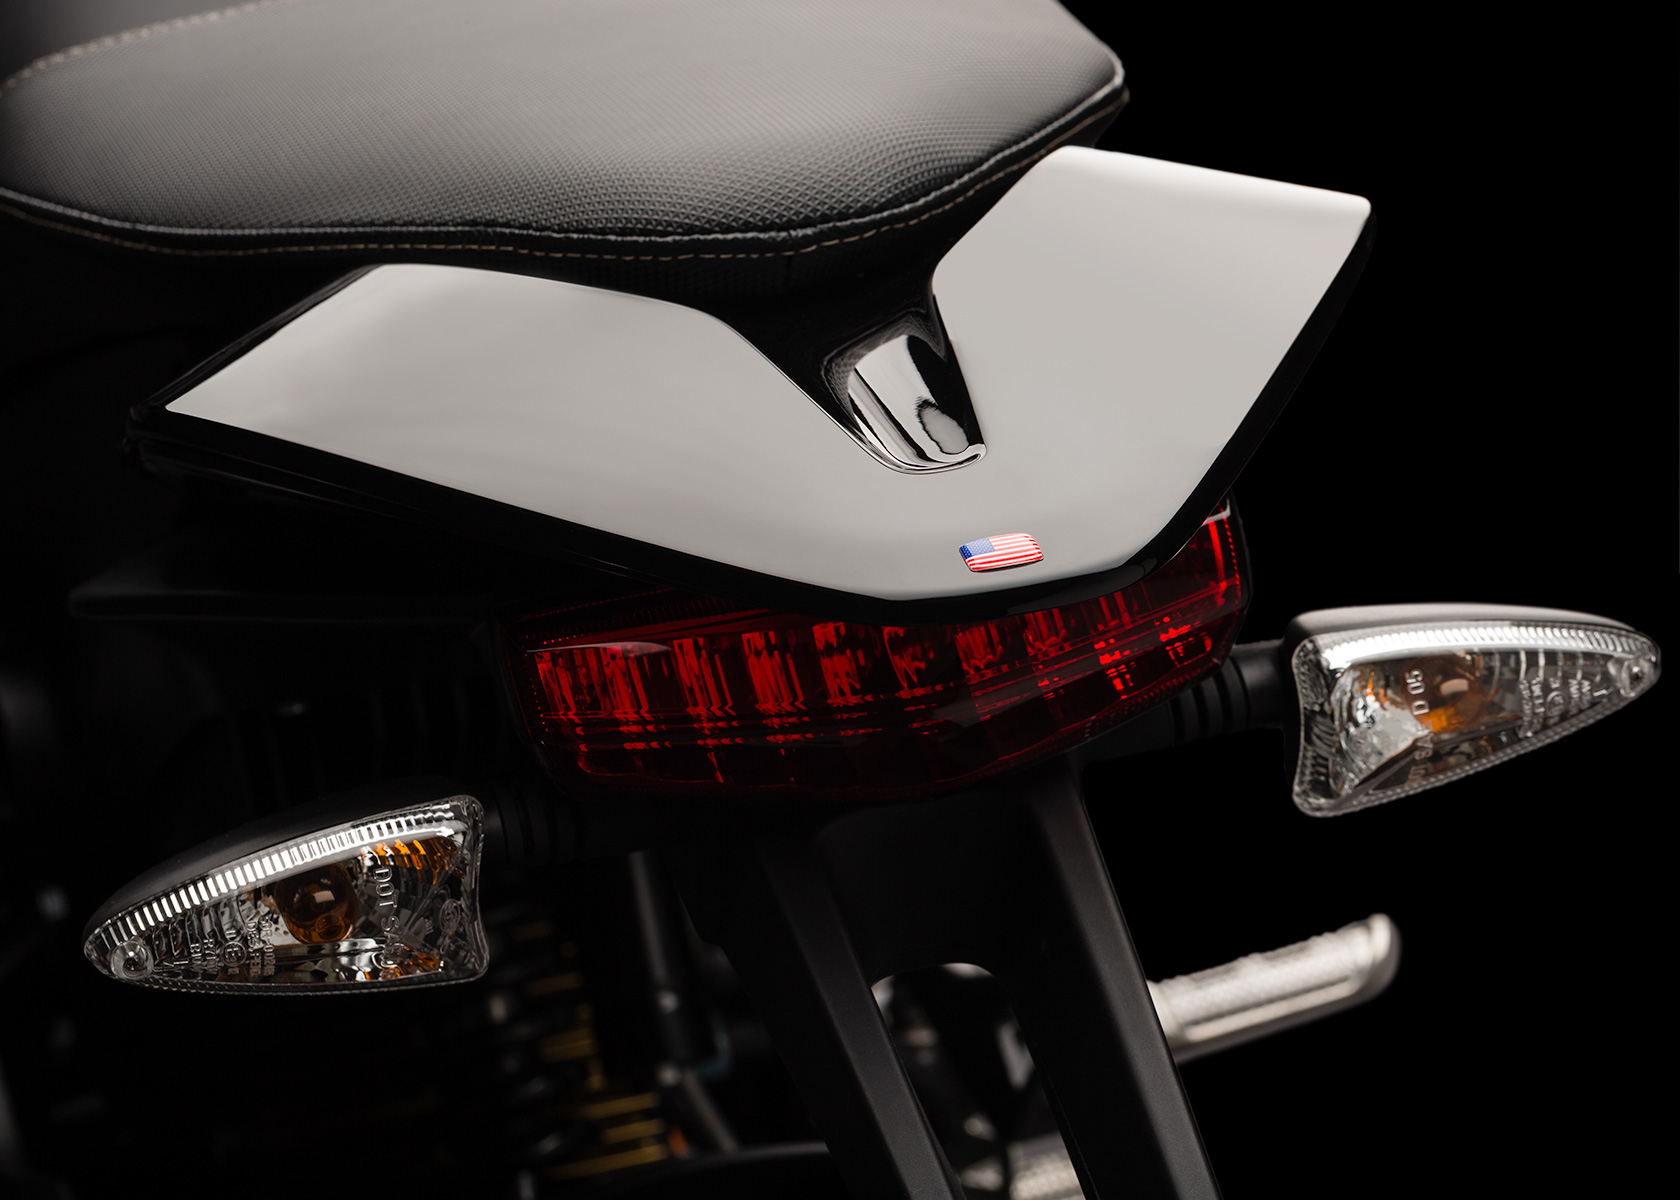 2013 Zero S Electric Motorcycle: tail